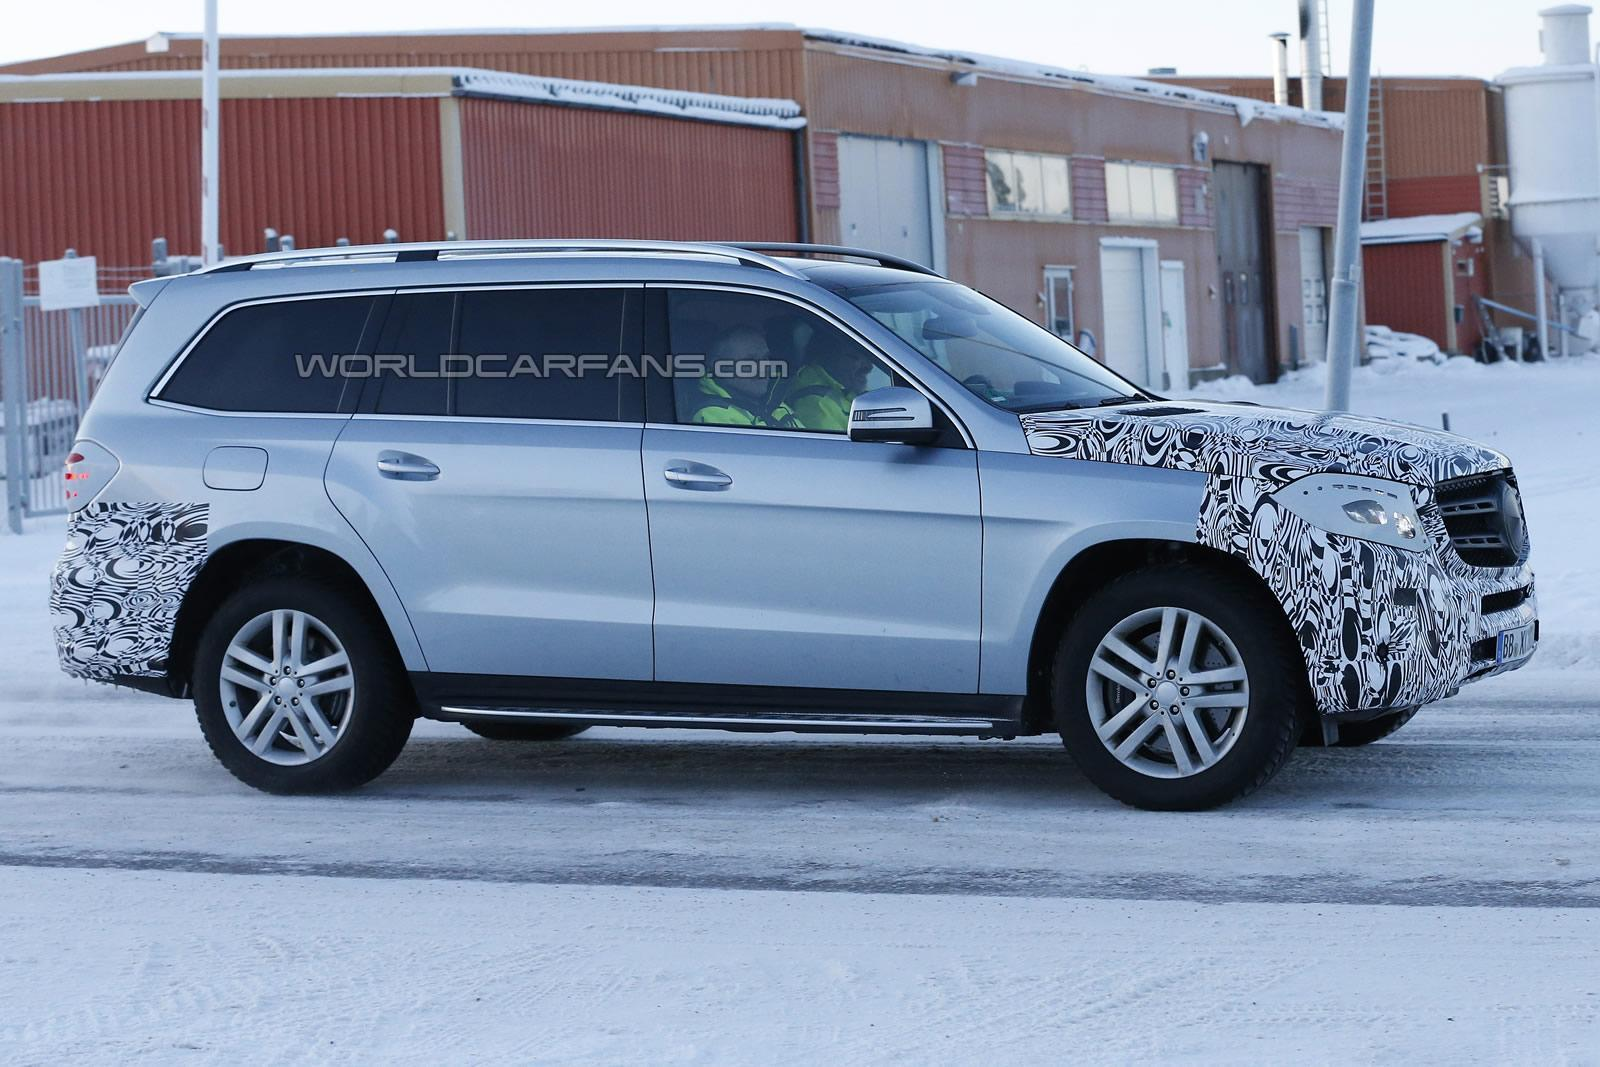 2016 Mercedes-Benz GLS facelift spotted testing